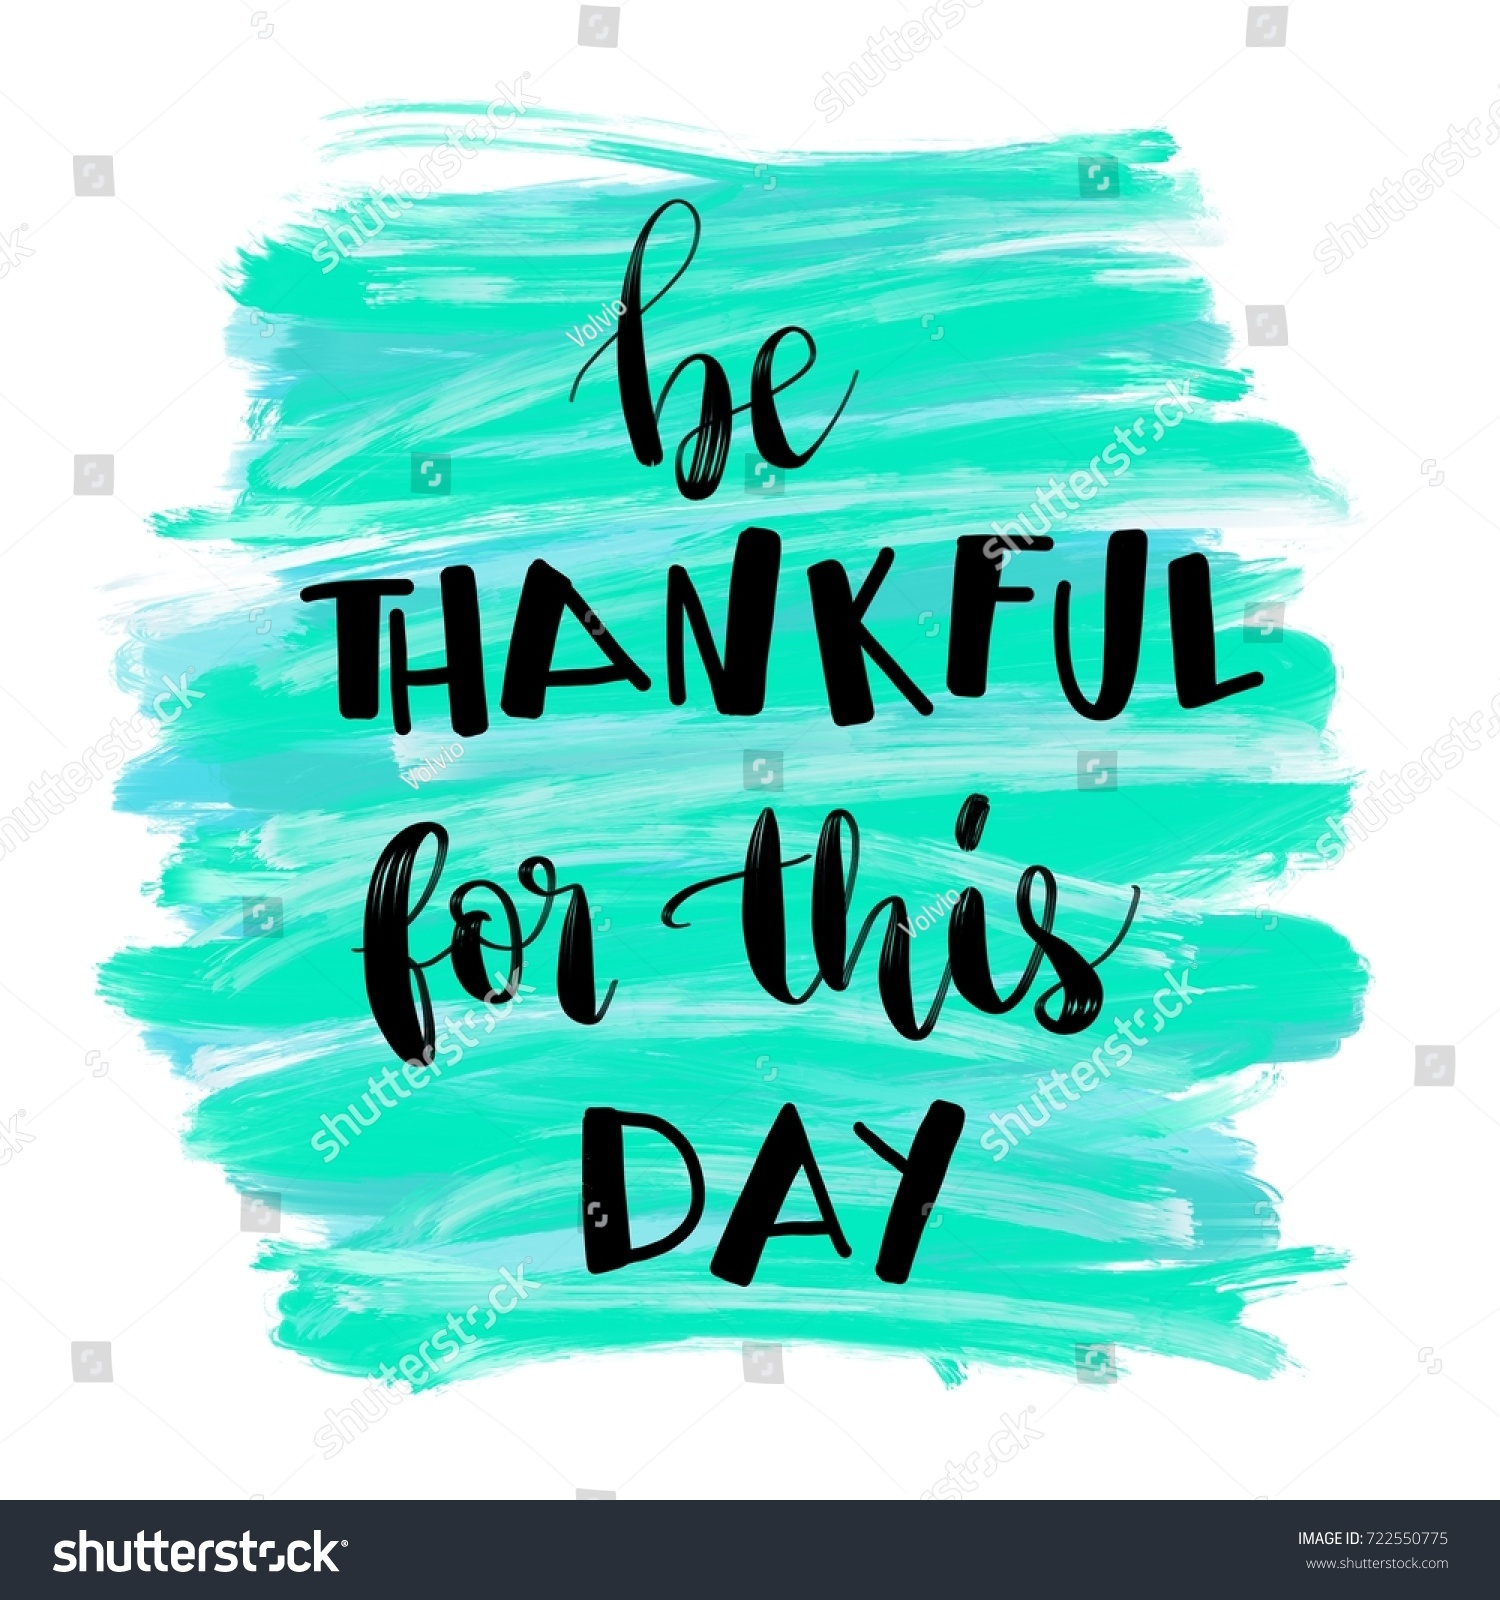 Inspirational Message Of The Day Be Thankful This Day Inspirational Message Stock Illustration